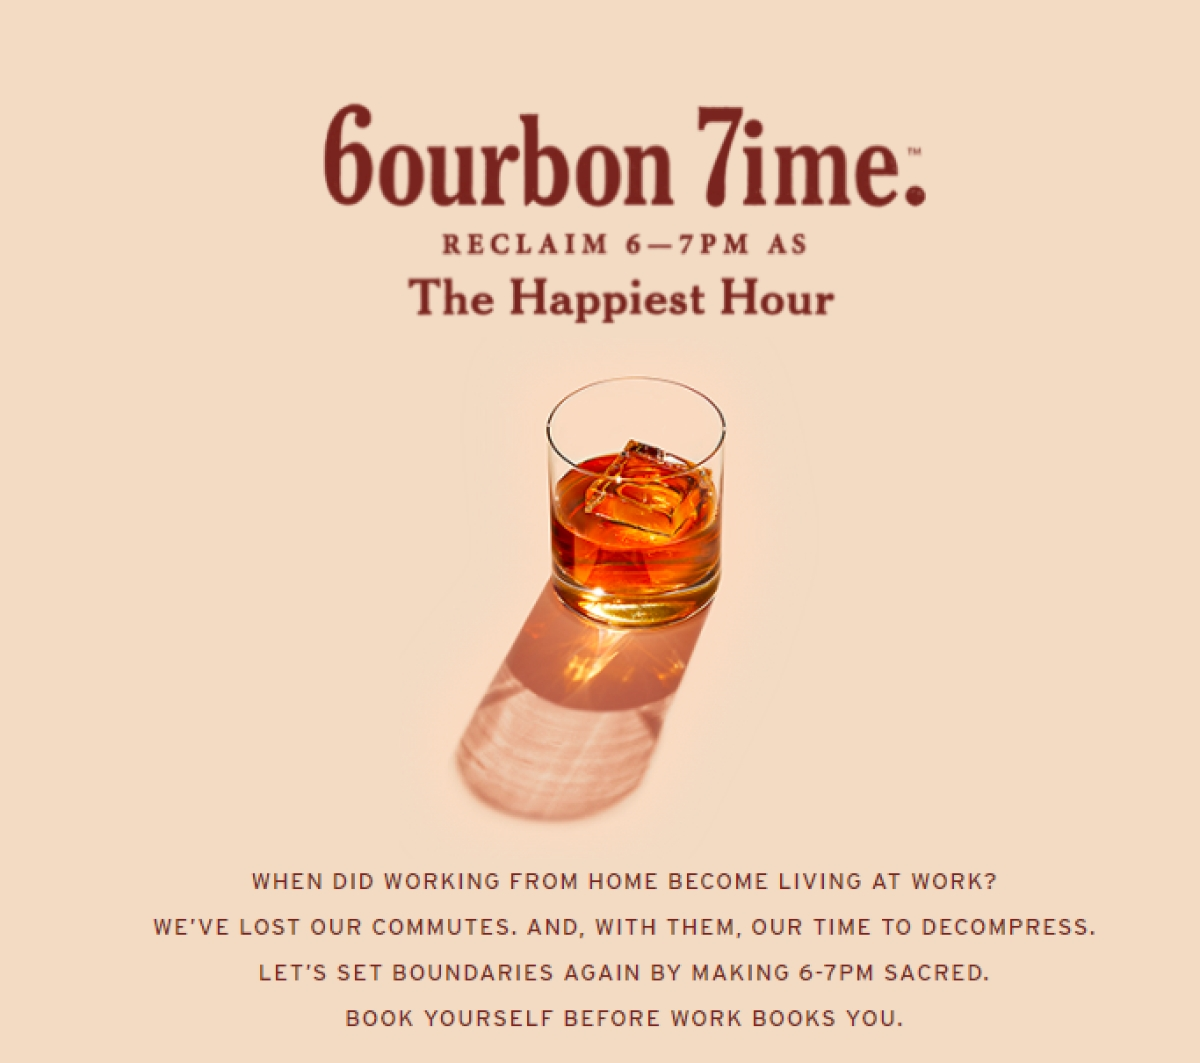 Beam Suntory wants you to reclaim 6-7 pm as 6ourbon 7ime